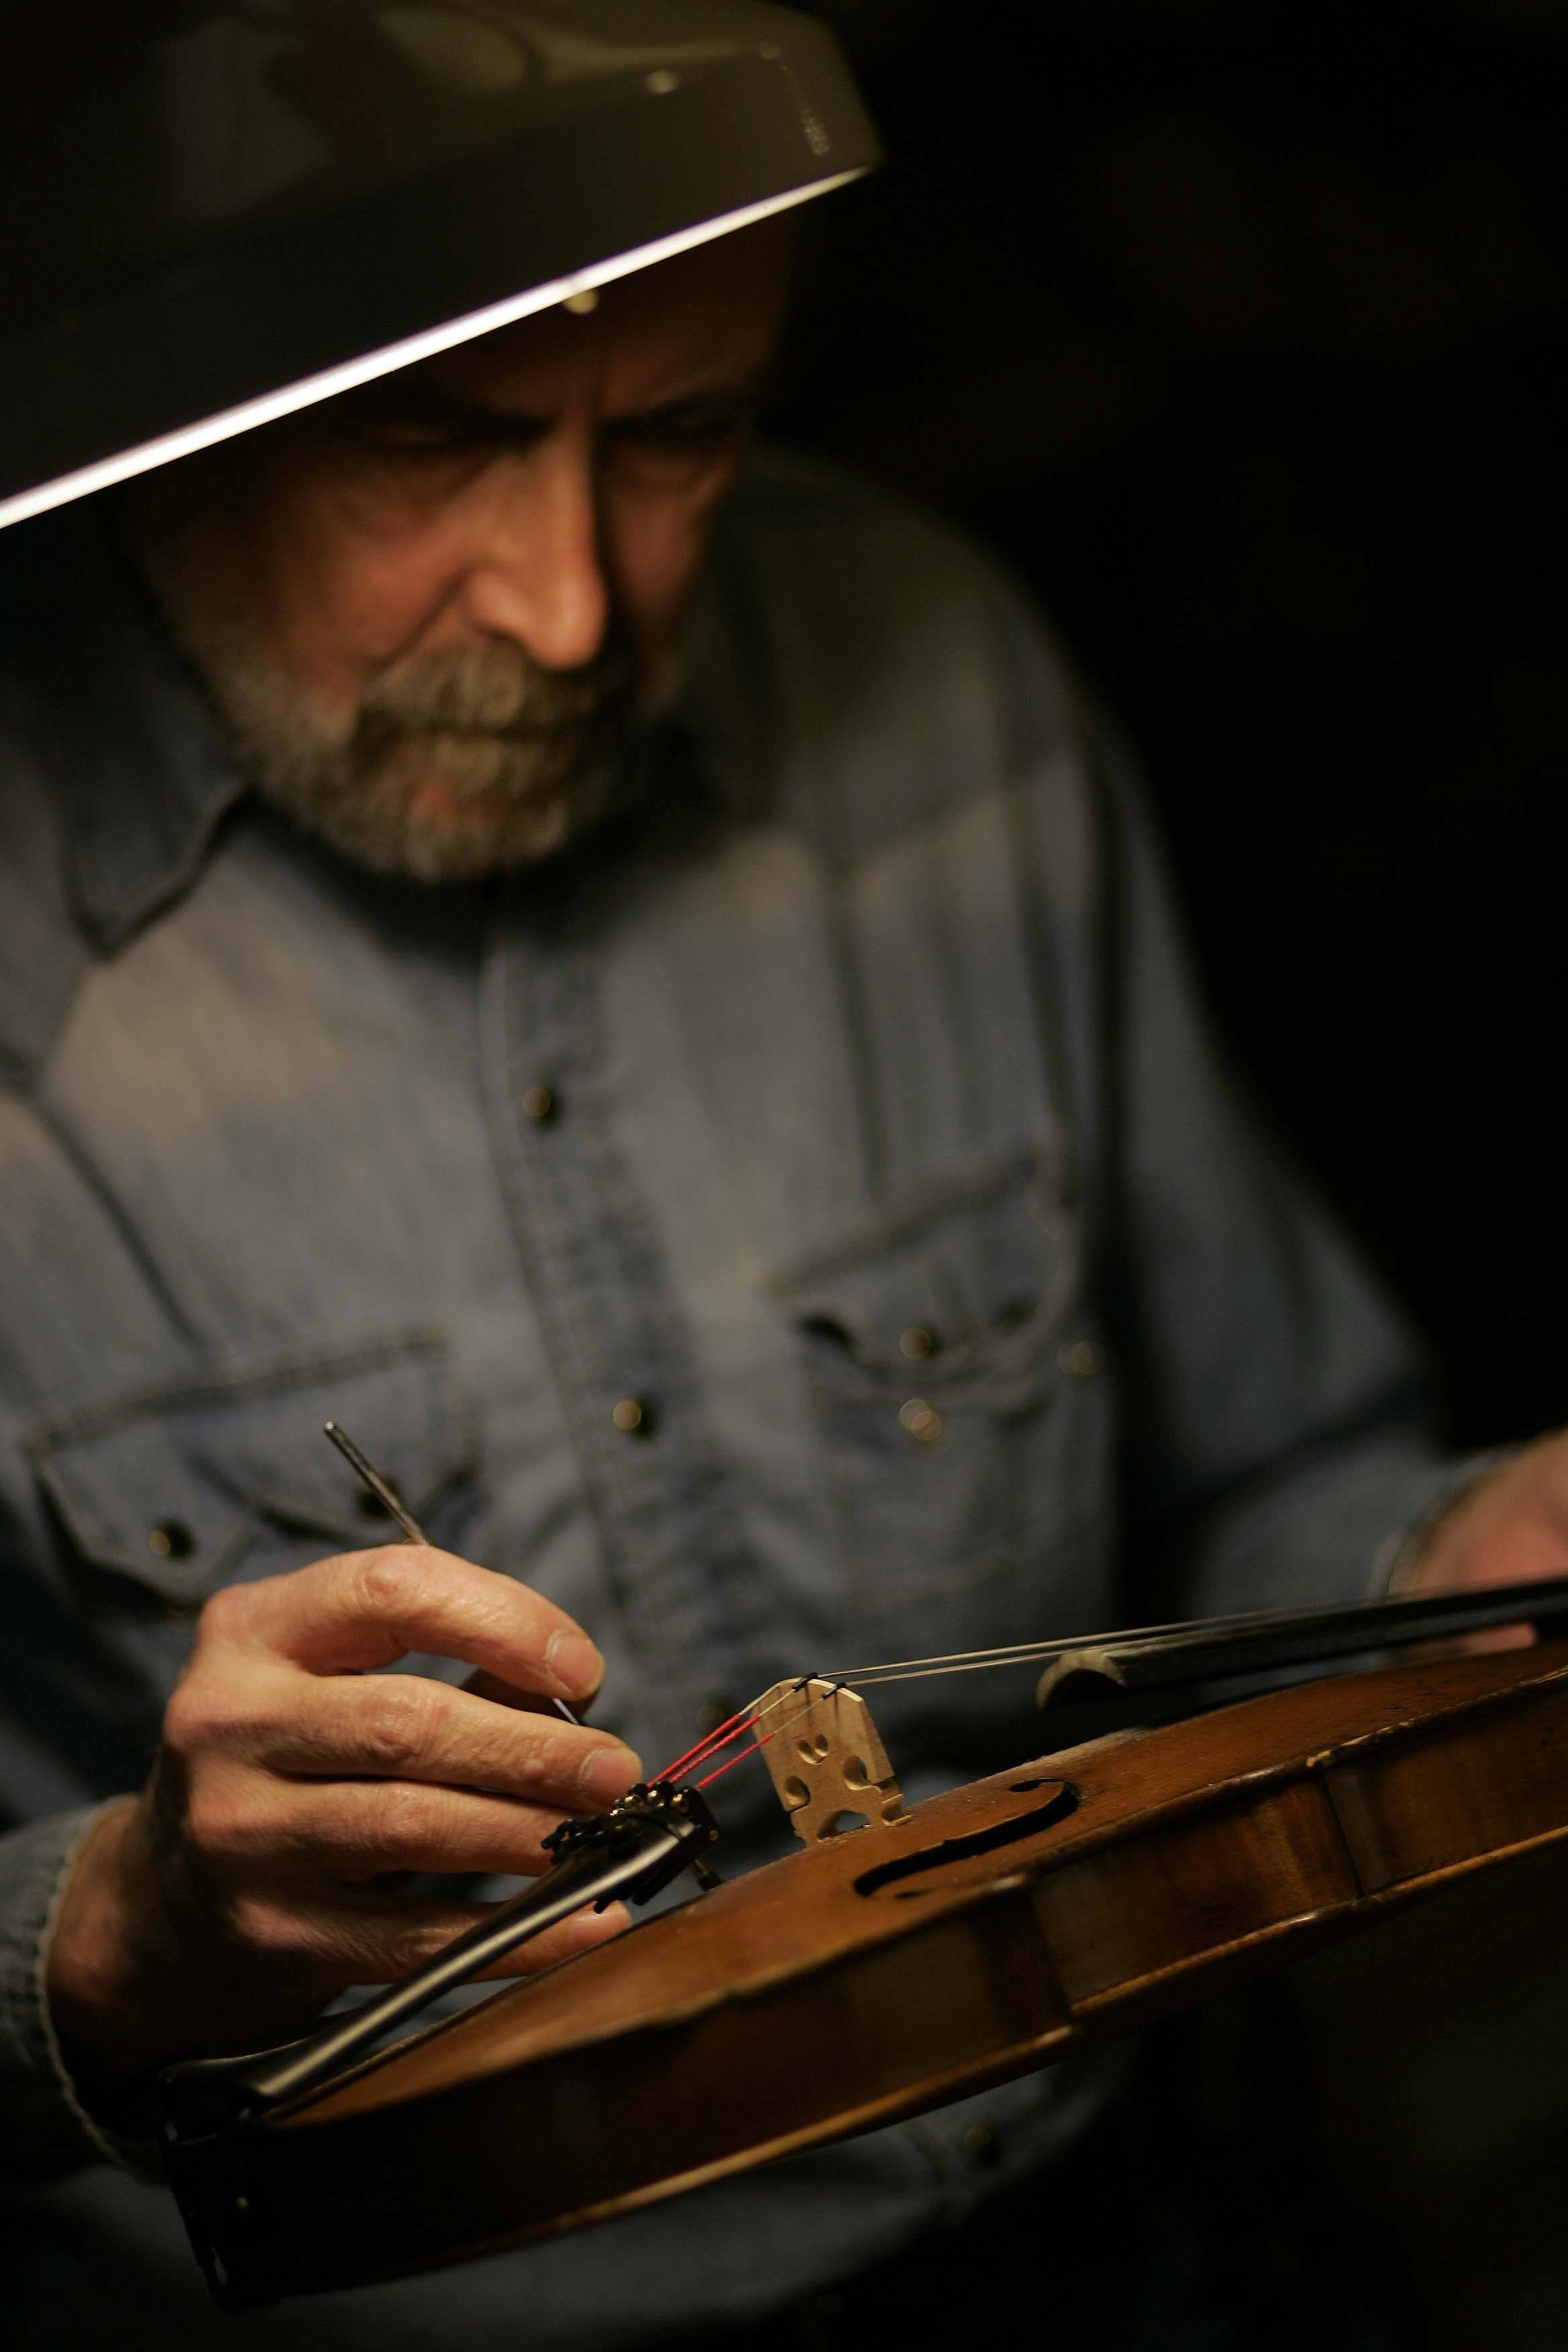 Brunkalla makes adjustments to the sound post of a violin that was brought in for repair.